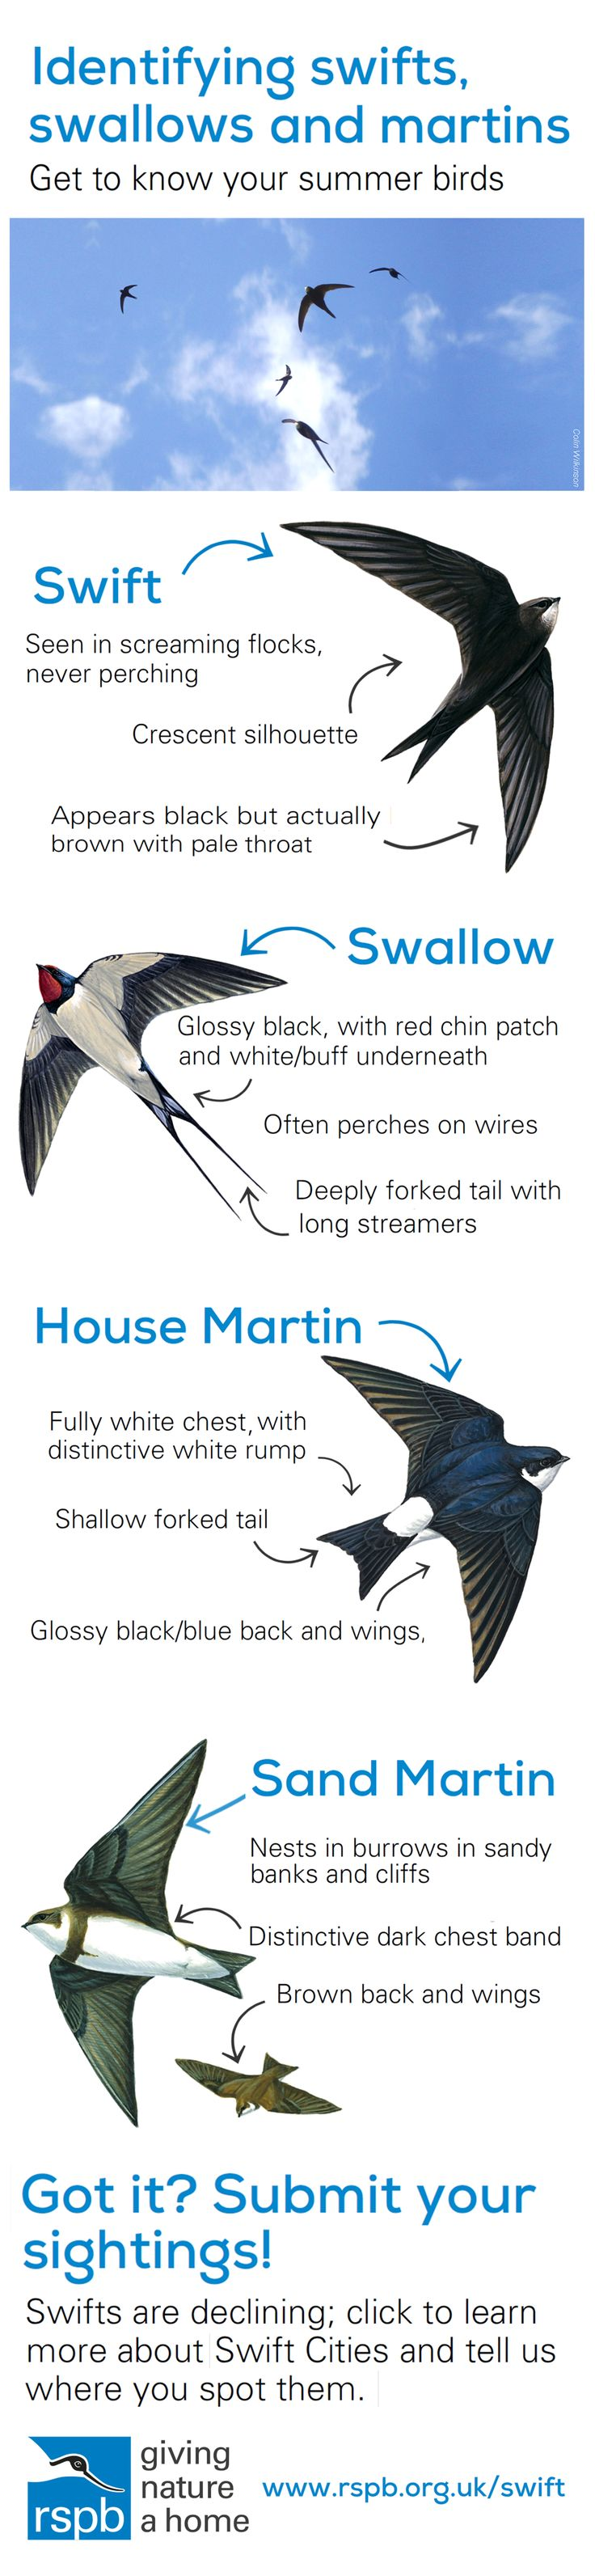 Identify swifts, swallows and martins this summer! We want you to submit sightings of swifts near you too, click to find out how. UK British bird identification, swift, swallow, house martin, sand martin.